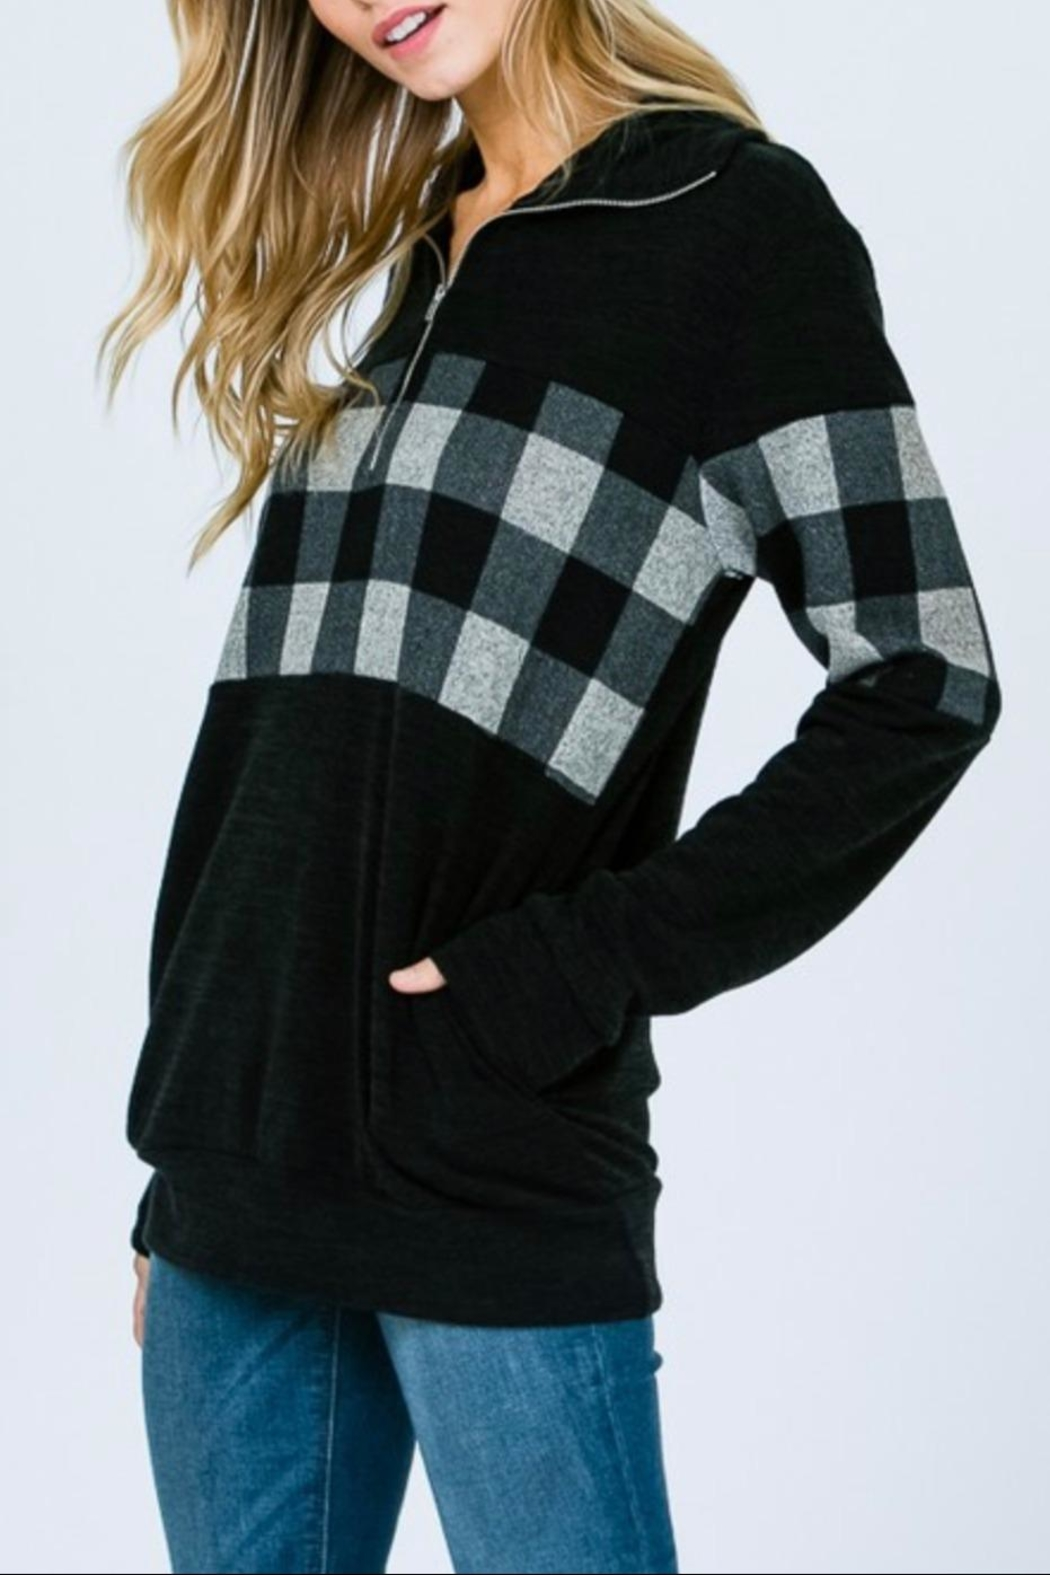 7th Ray Plaid Zip-Up Sweater - Side Cropped Image